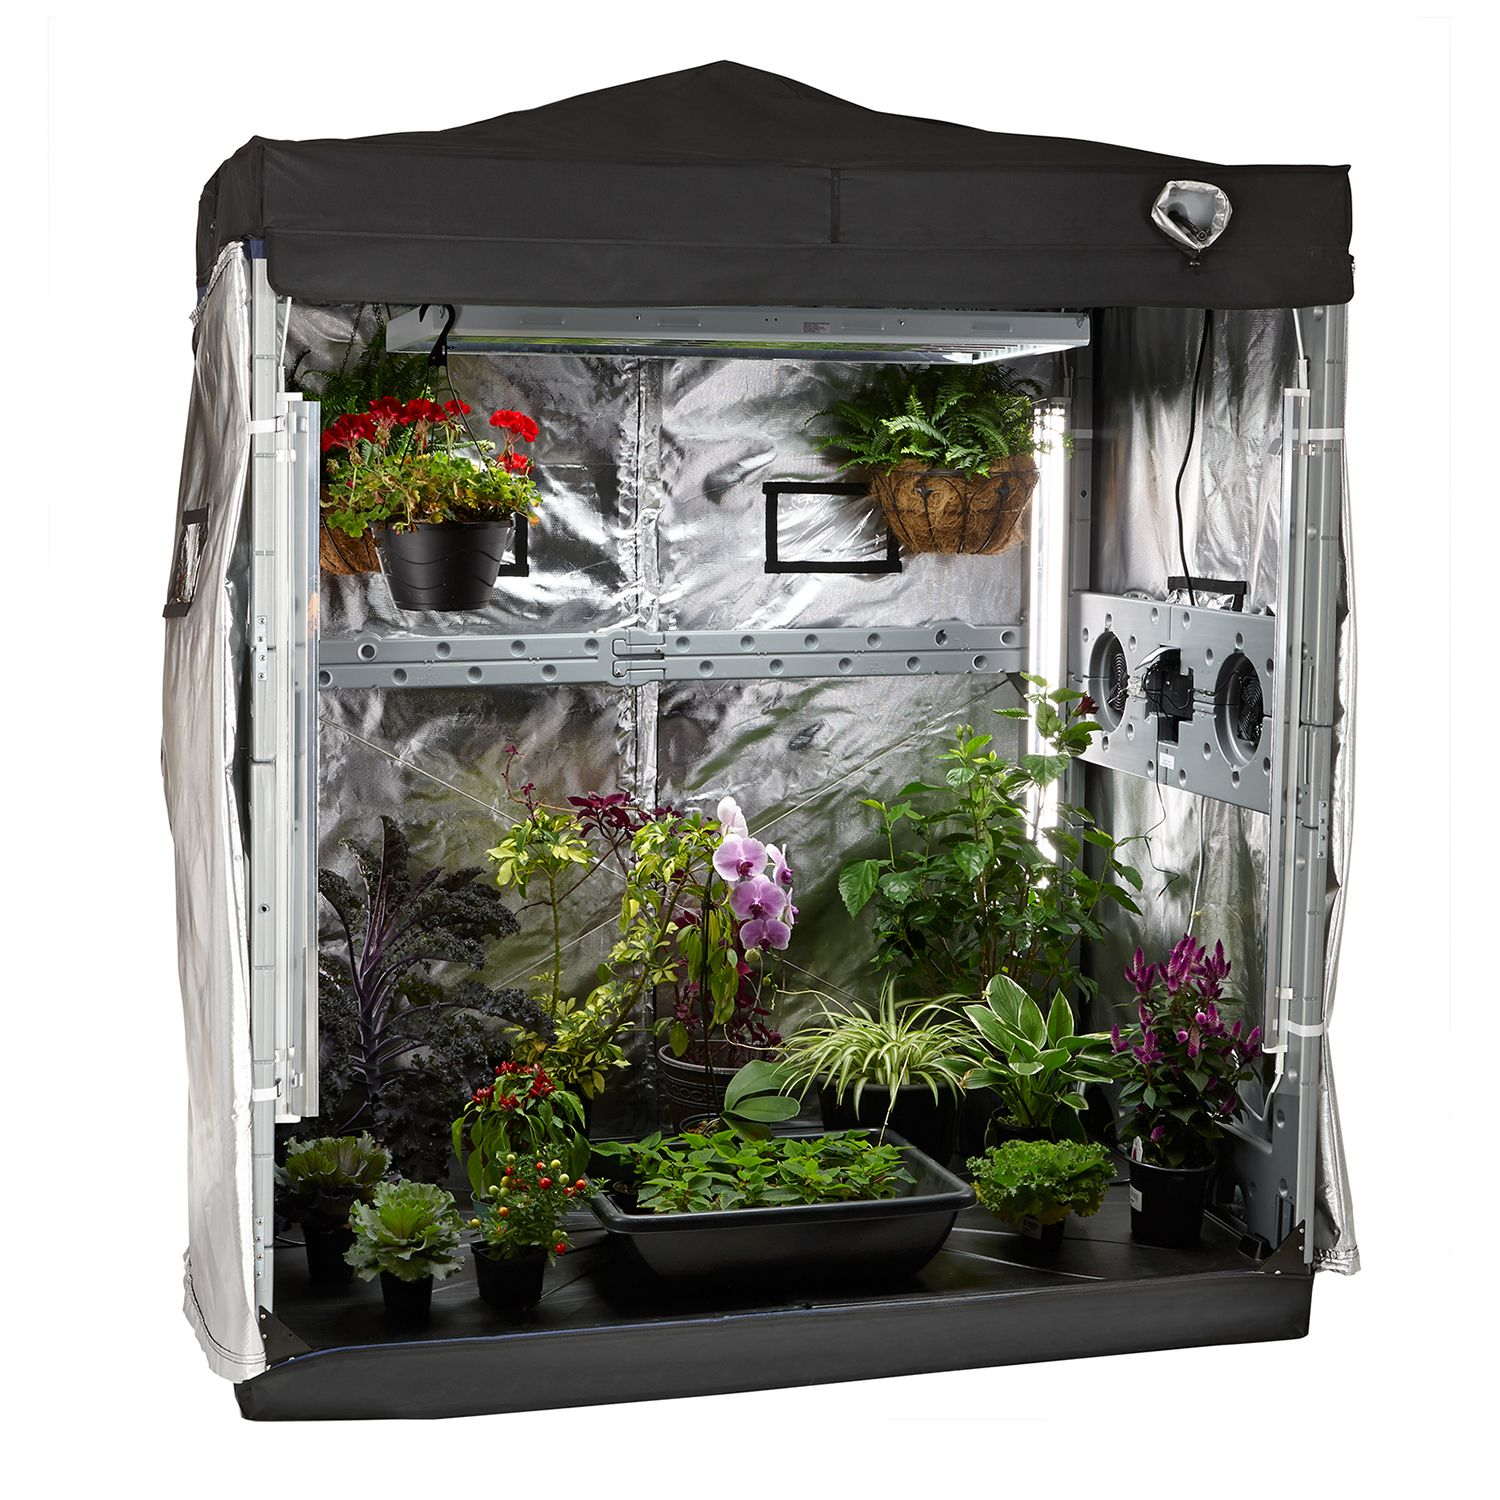 Herb Kits For Indoors: Indoor Greenhouse Grow Light Tent Garden Kit Hydroponic